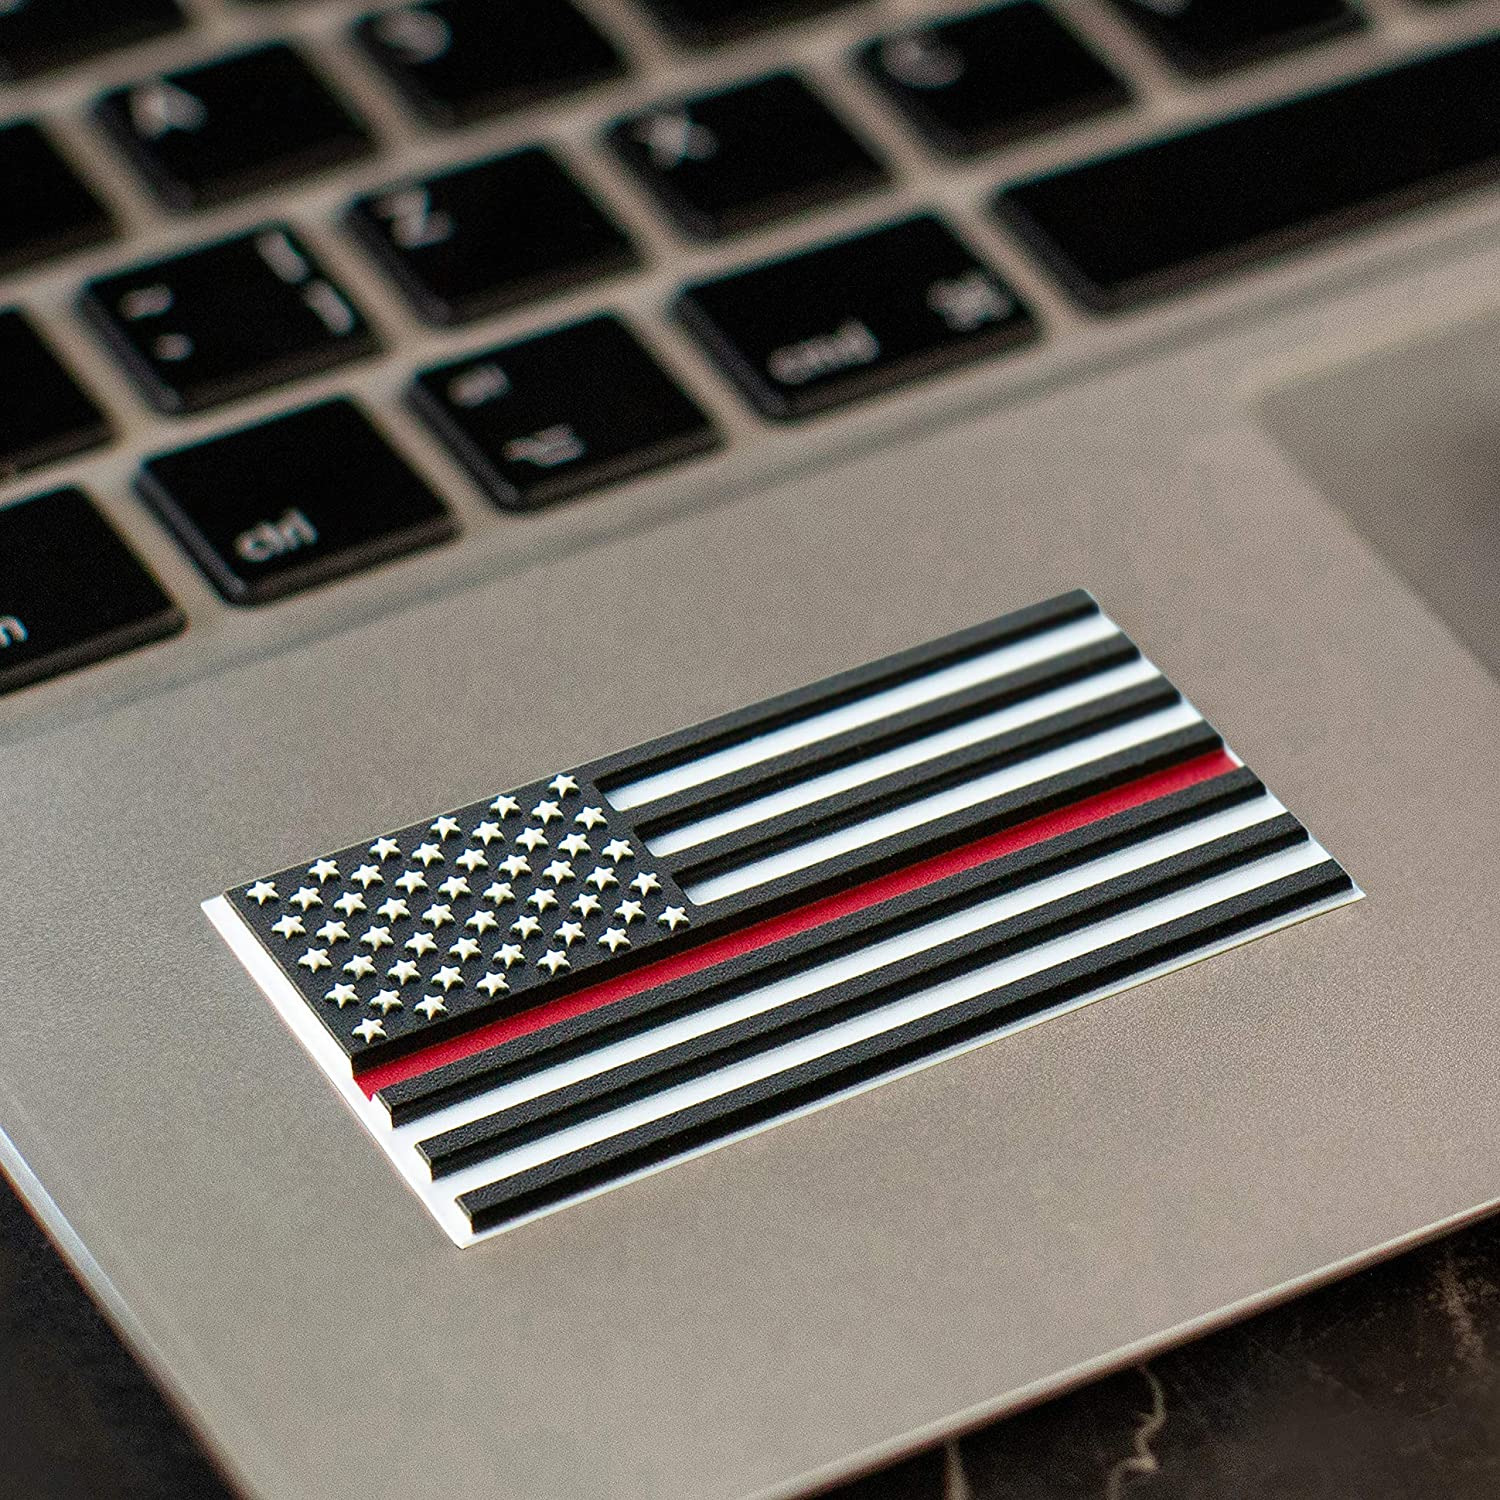 American Flag Red Line Sticker – 3D Premium Firefighter Red Line Decal Phone – 10 in Pack Firefighter Decals Laptop Toolbox 2.375 х 1.25 Inch Vinyl Firefighter Stickers – Raised Stars Stripes